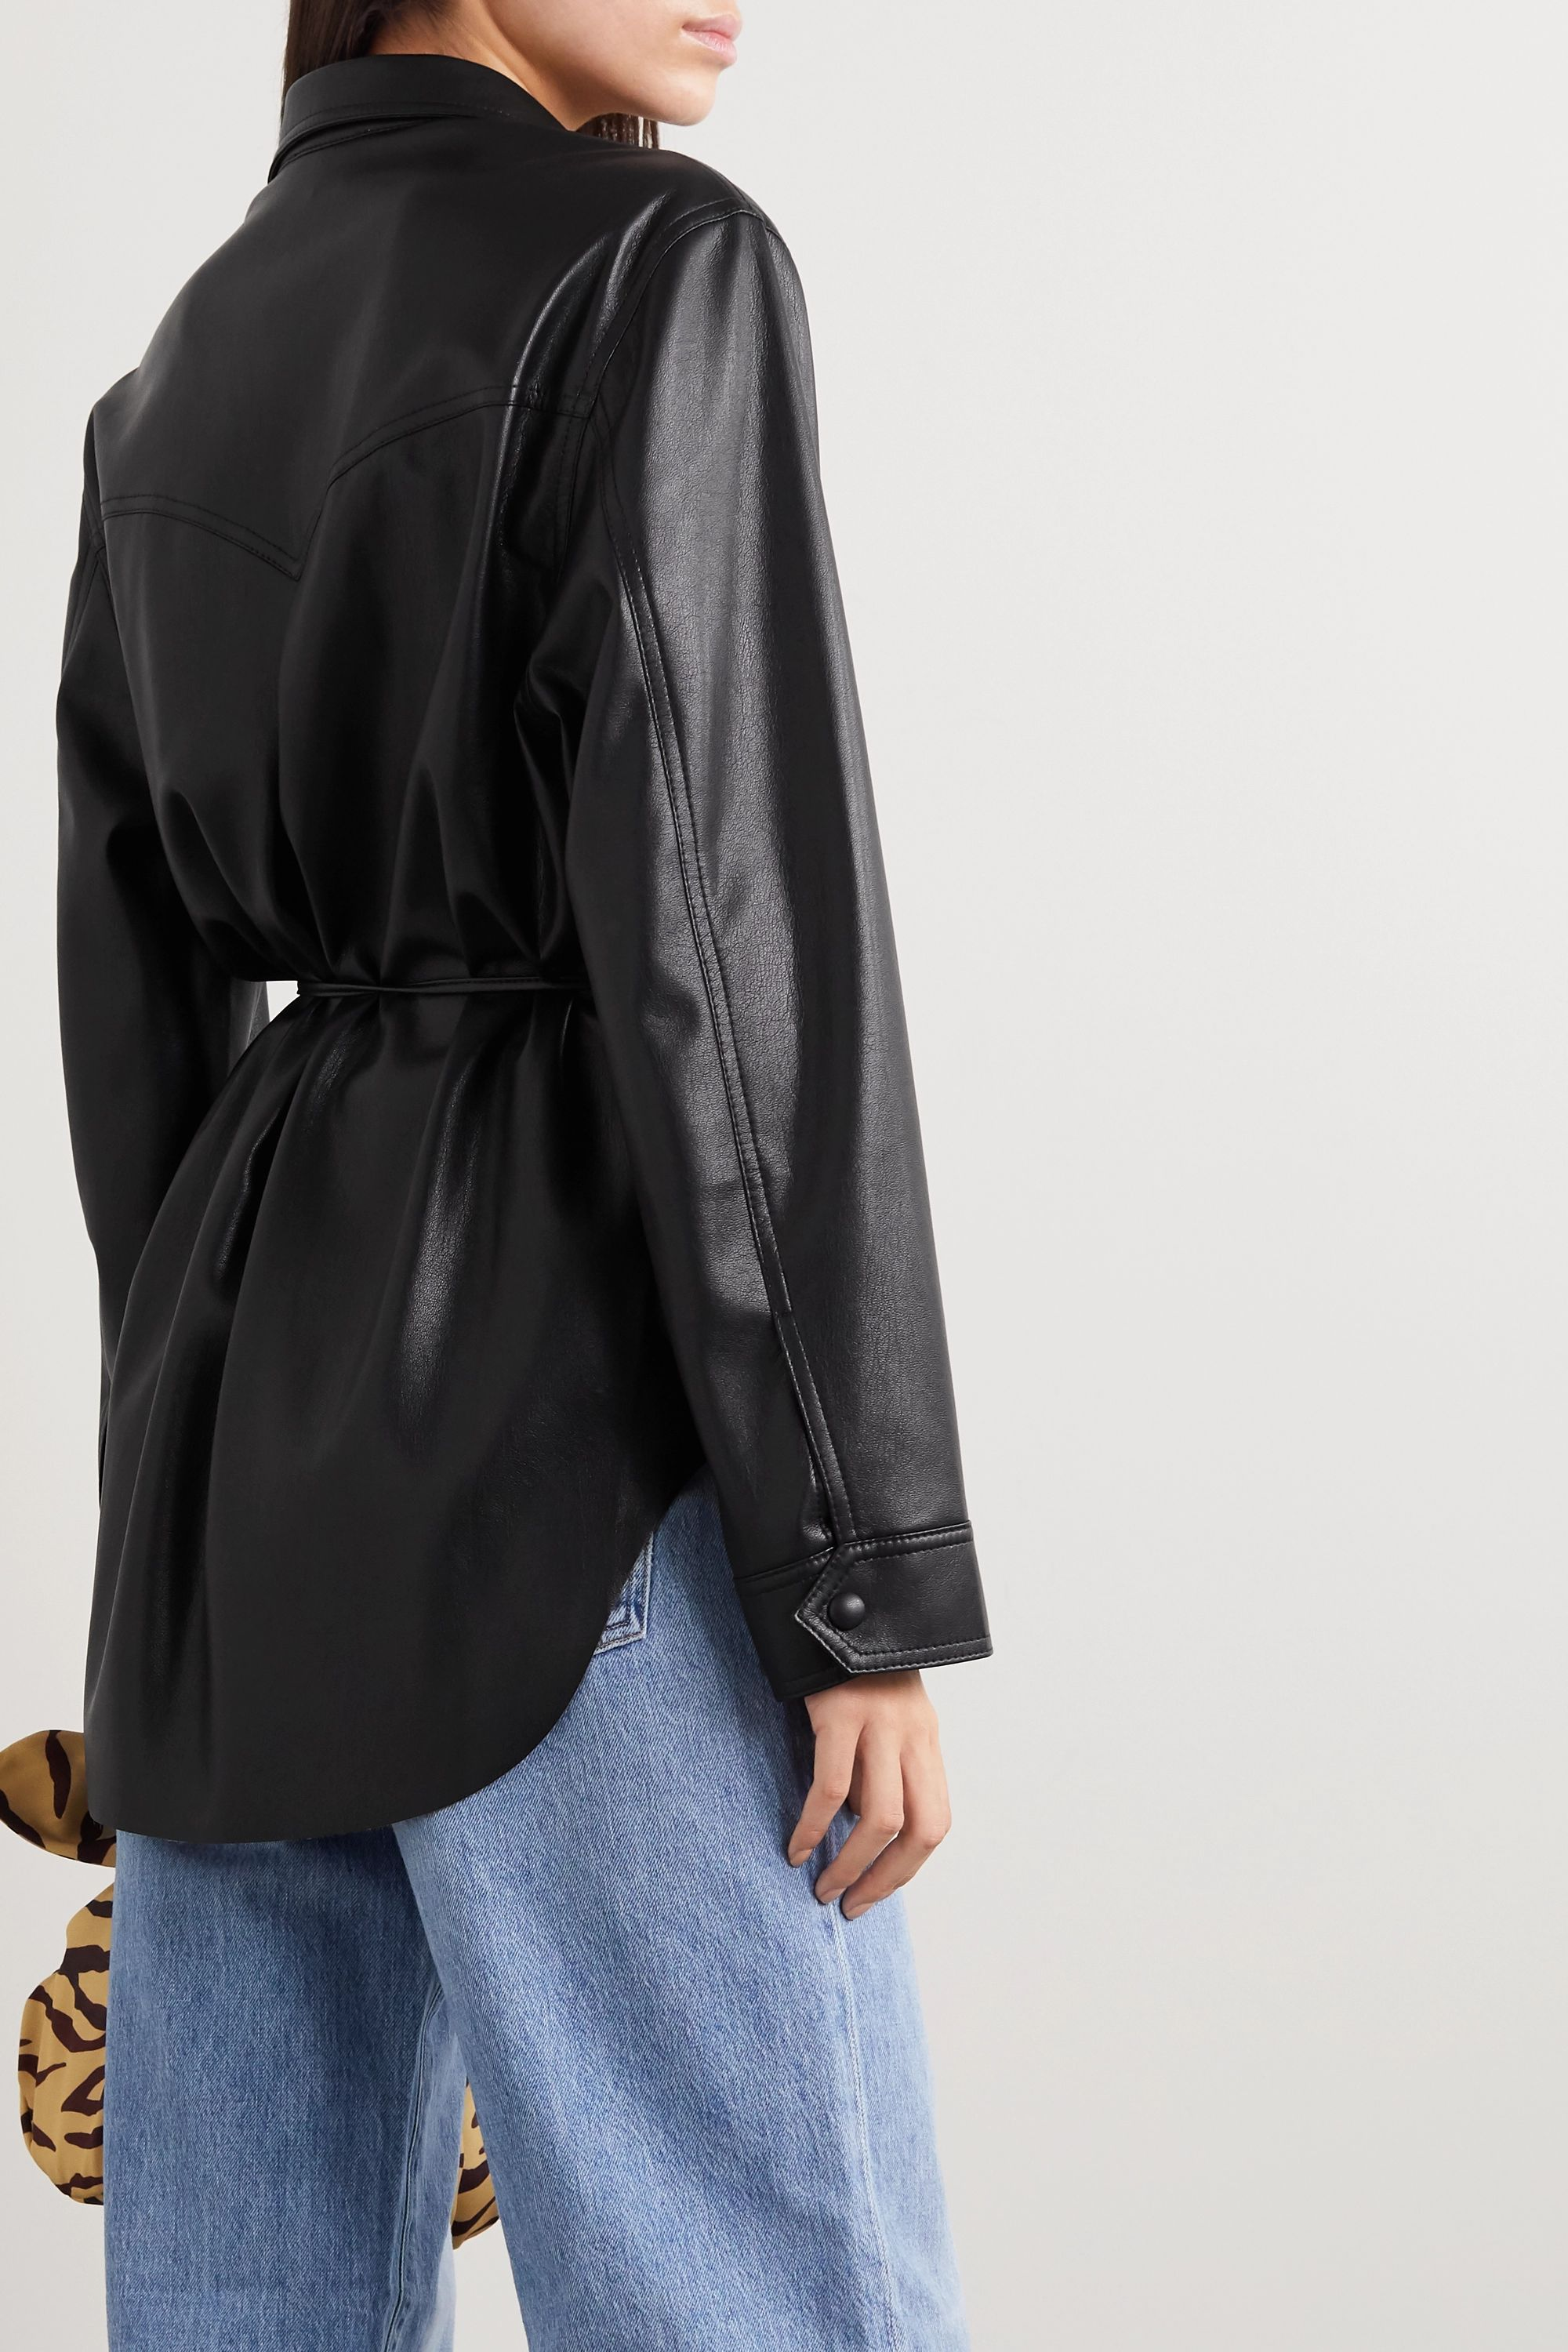 Nanushka Eddy belted vegan leather shirt